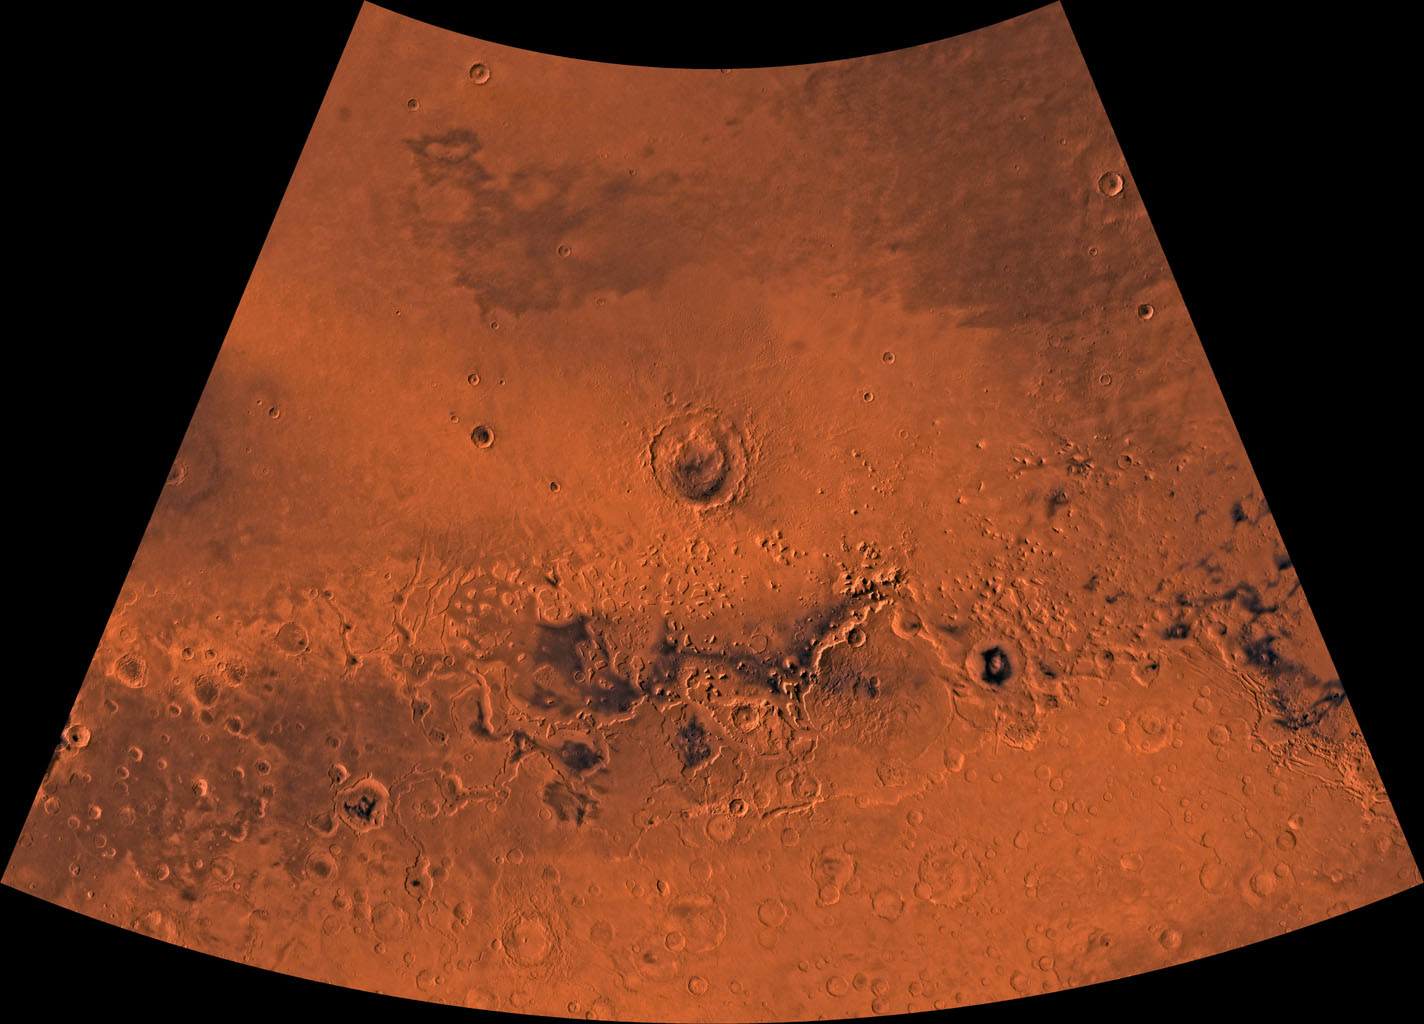 Mars digital-image mosaic merged with color of the MC-5 quadrangle, Ismenius Lacus region of Mars. This image is from NASA's Viking Orbiter 1.